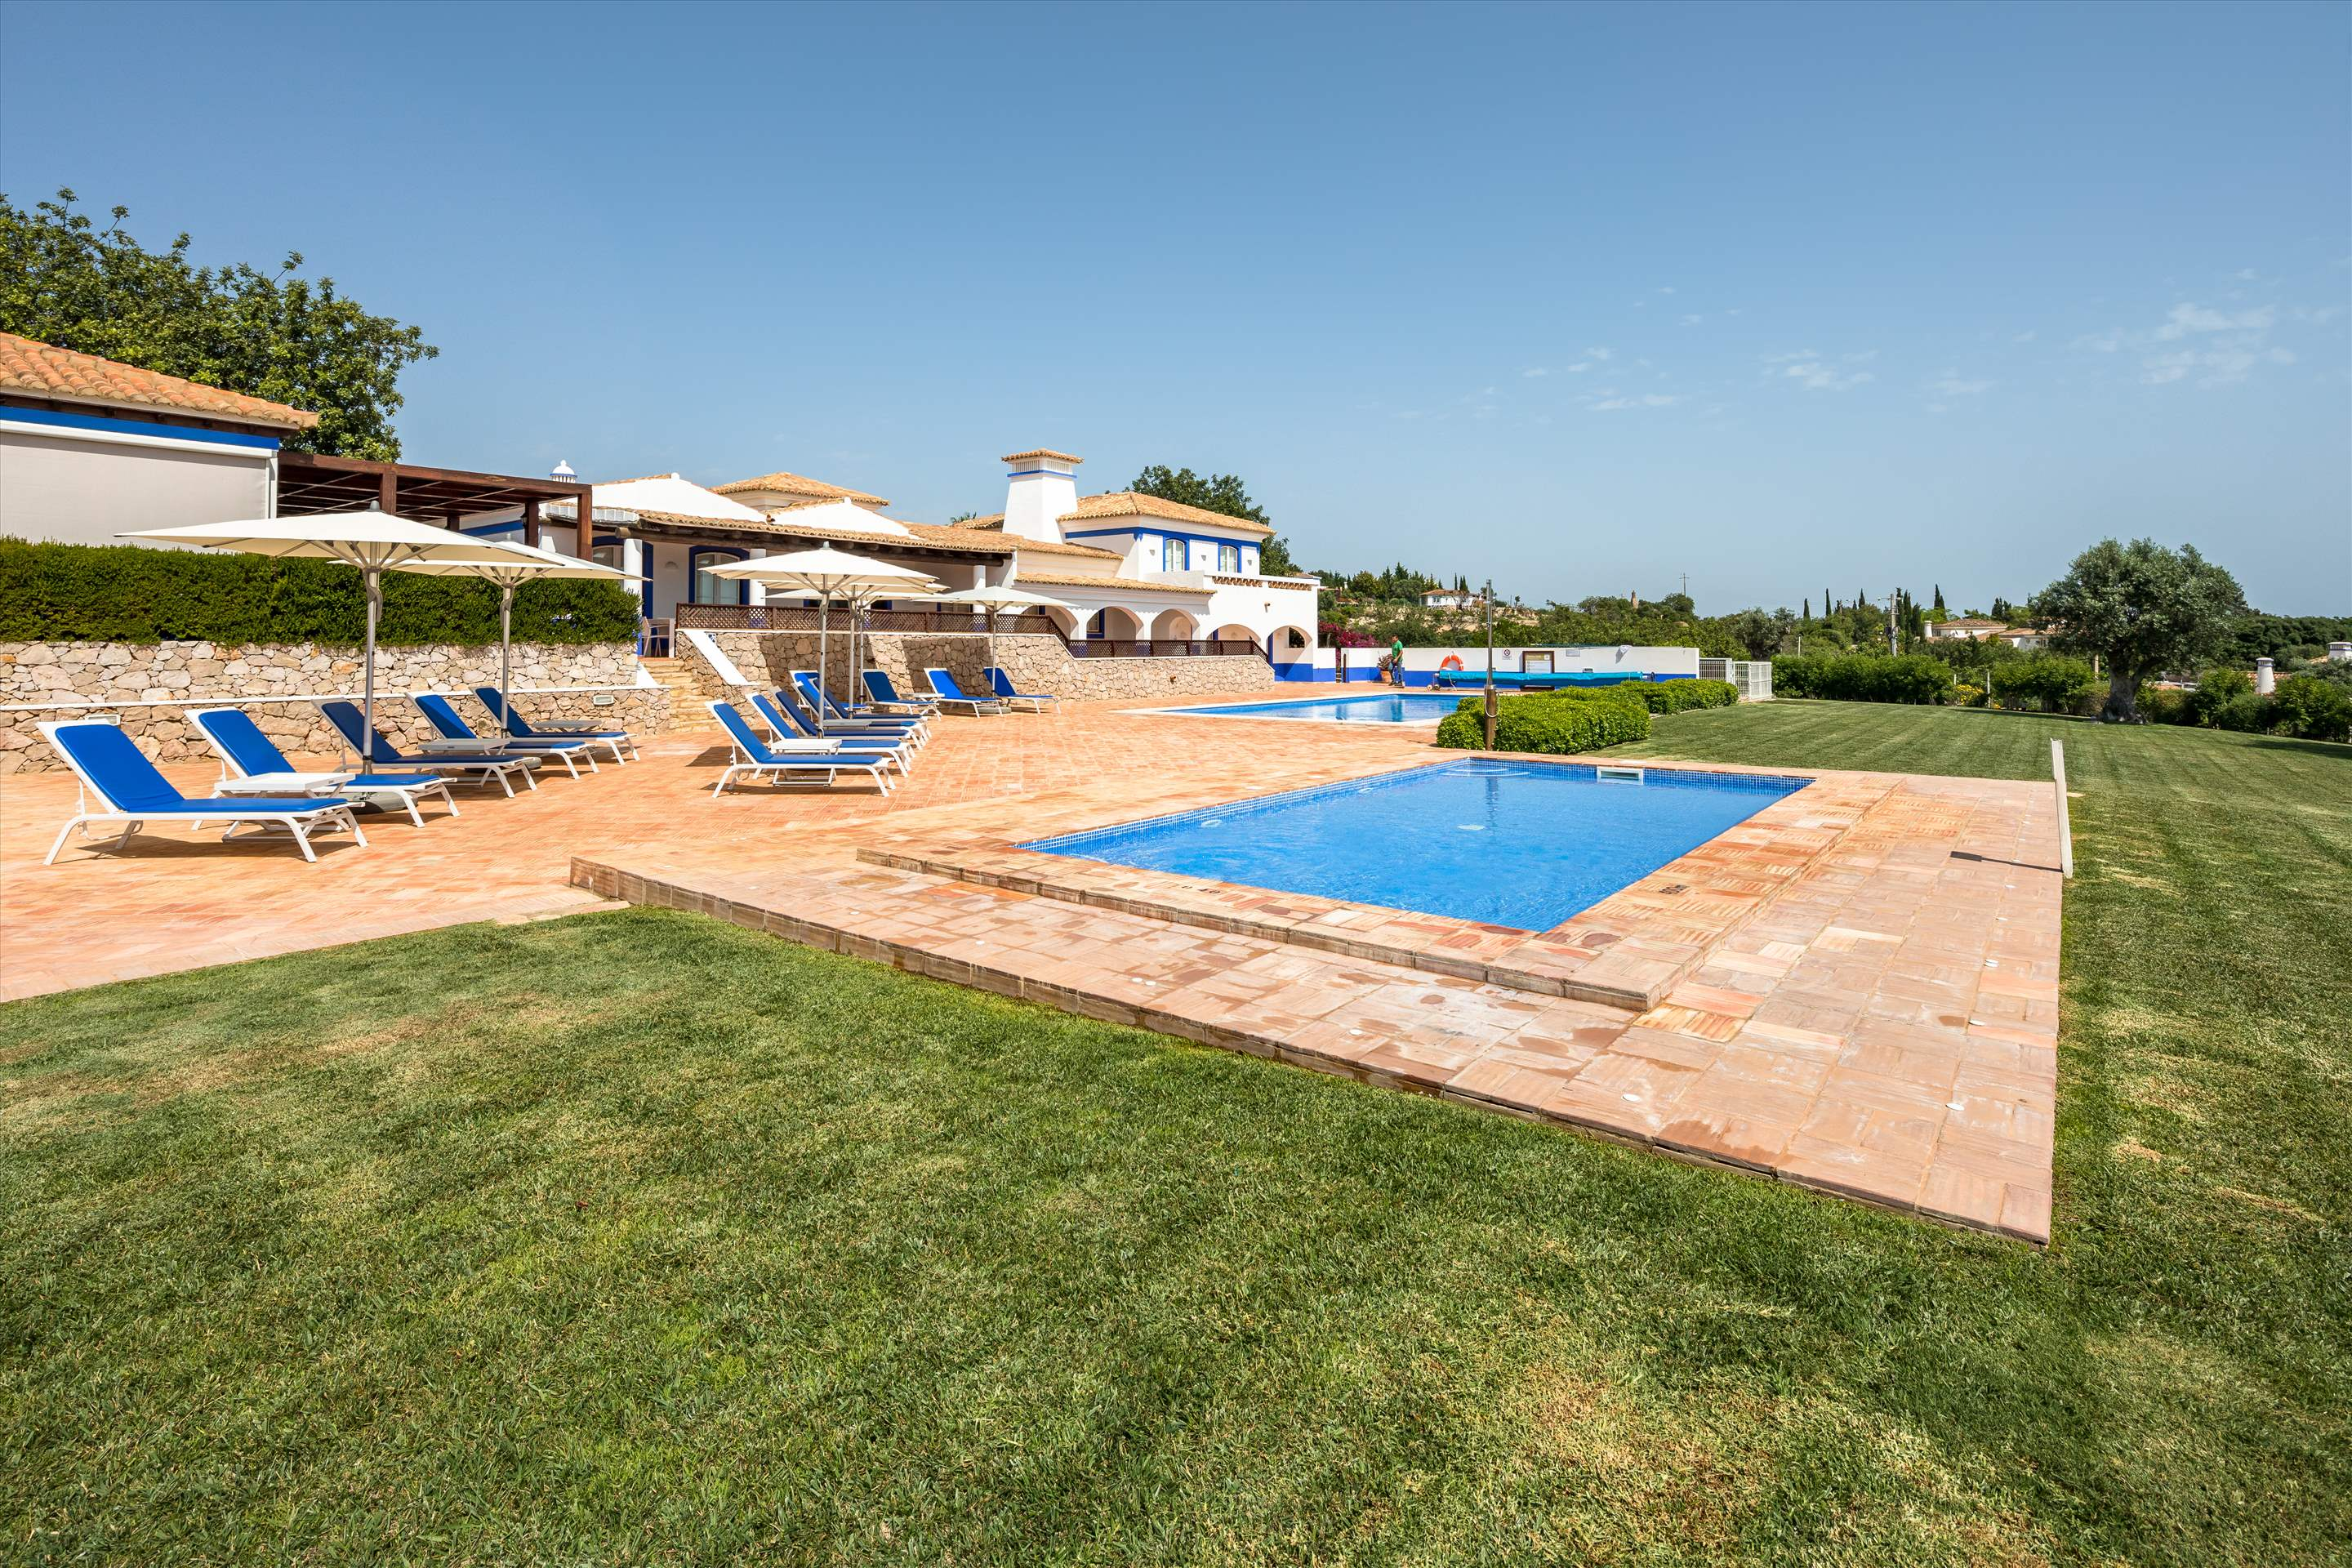 Casa Cahombo, 5 bedroom rate for 7-10 persons, 5 bedroom villa in Vilamoura Area, Algarve Photo #1